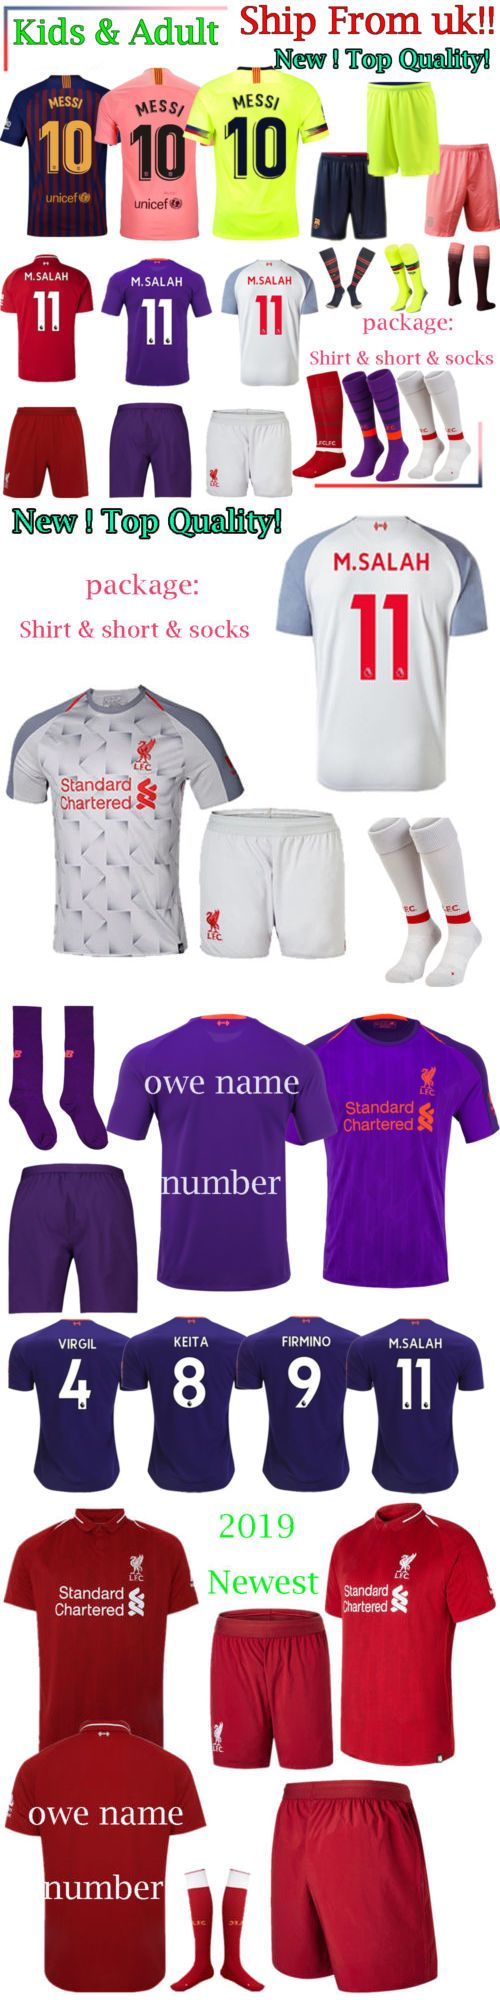 fcbe783691e Outfits and Sets 156790: 2019 Football Kid Adult Kit Child Short Shirt  Socks Soccer Jersey Club Suit Set -> BUY IT NOW ONLY:… | Outfits and Sets  156790 ...